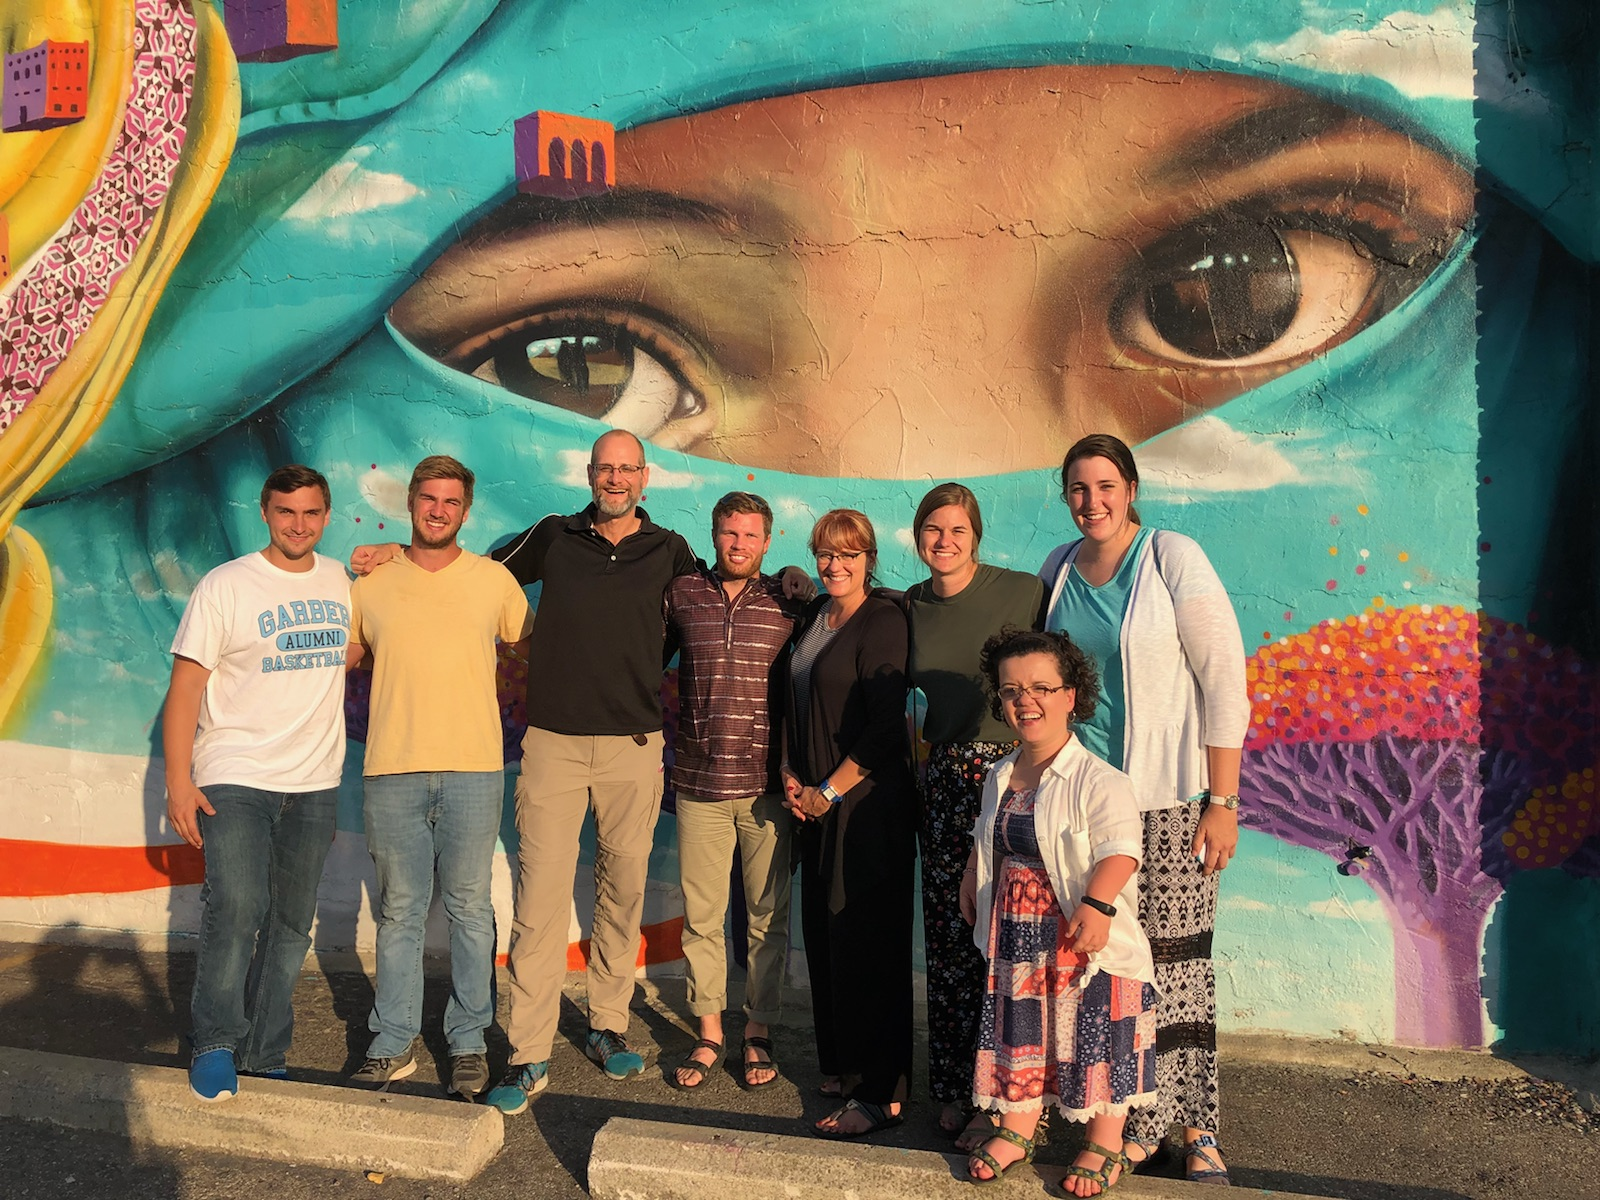 Detroit Missions Team at the wall Mural